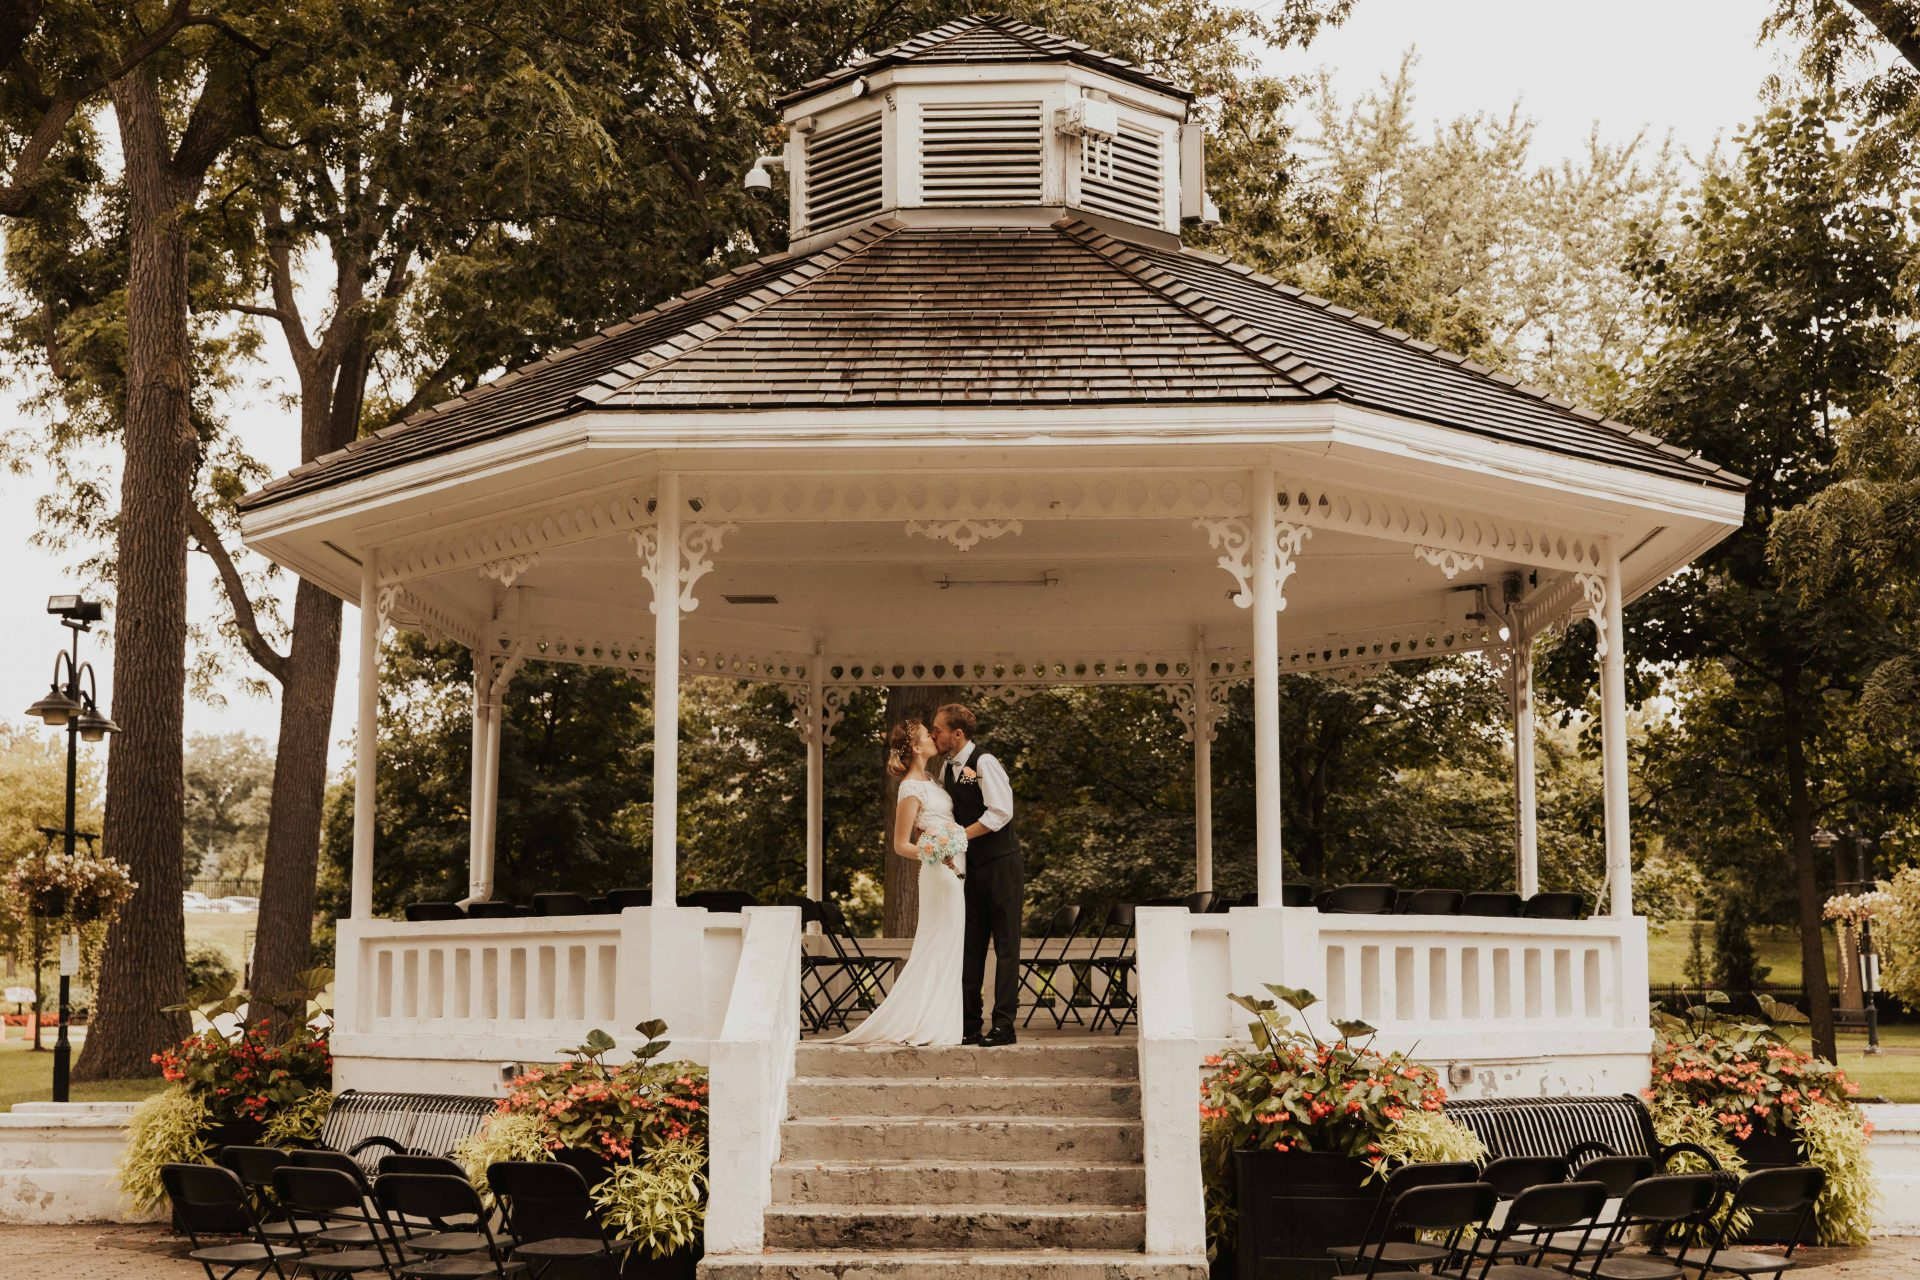 gage park gazebo wedding